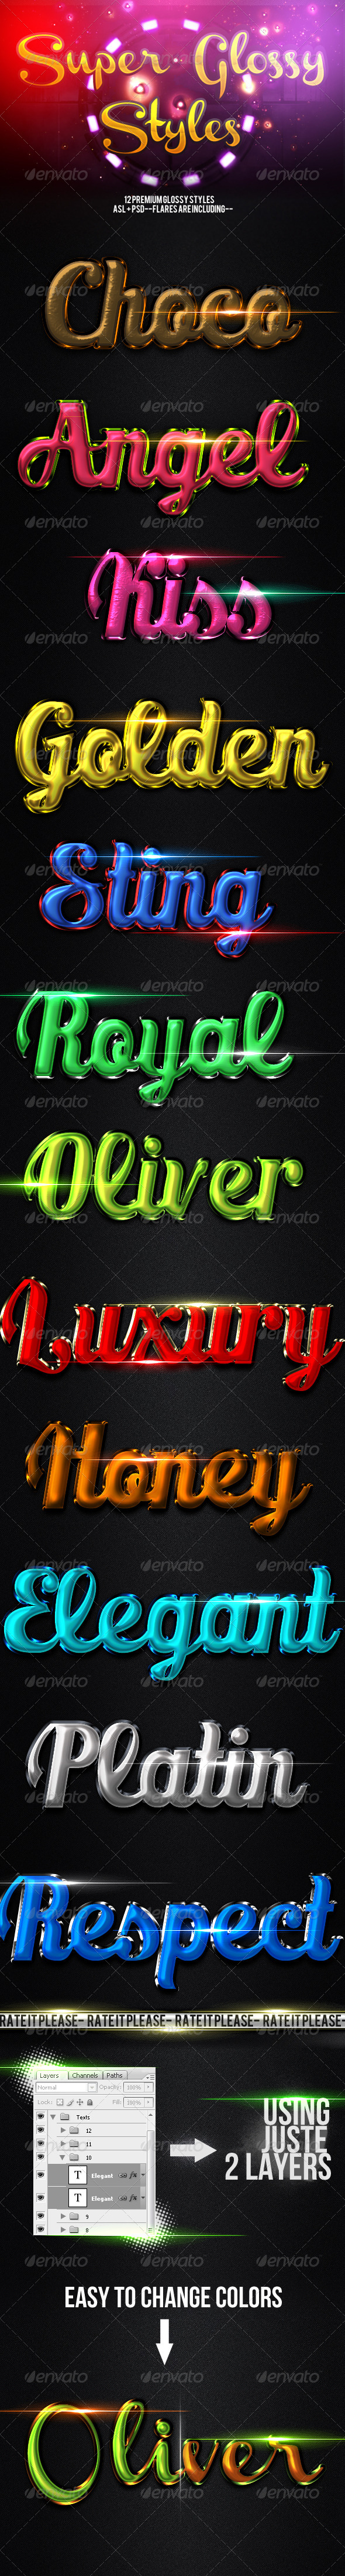 GraphicRiver Glossy Layer Styles FX 4058273